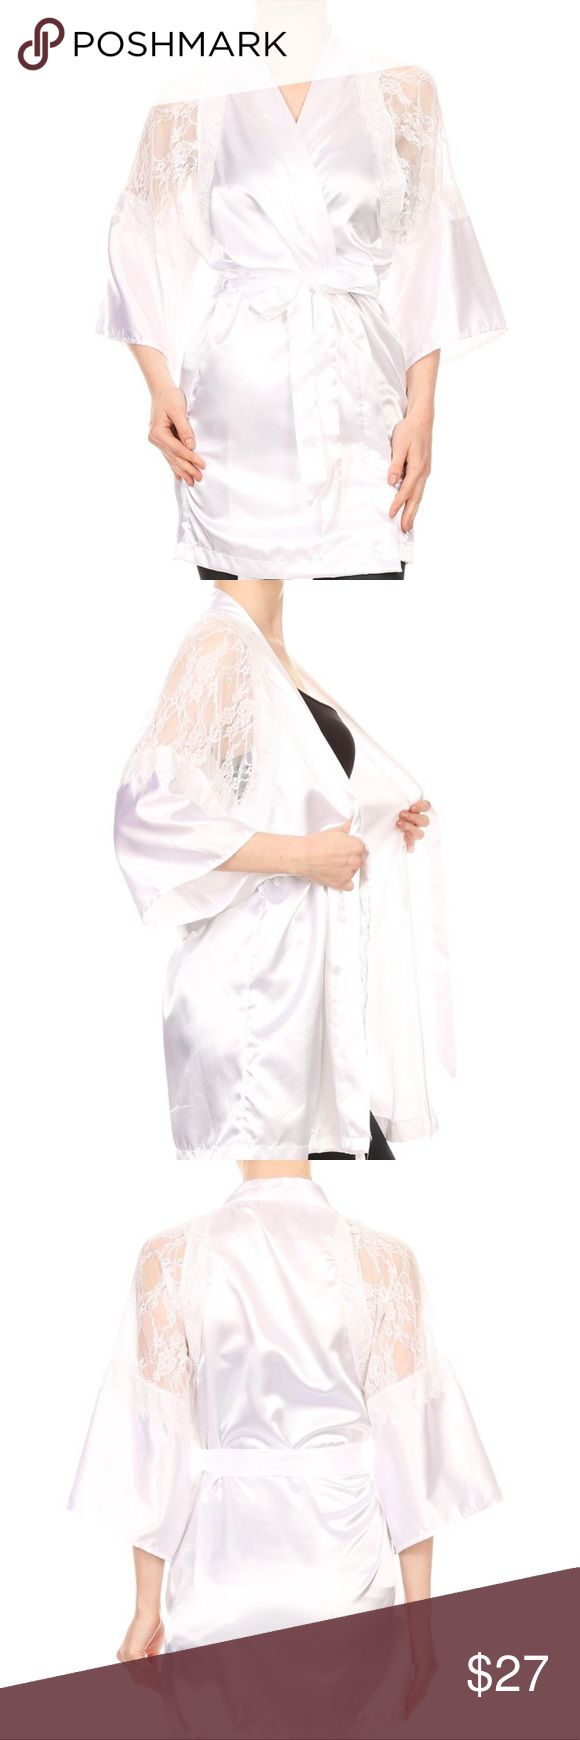 White Satin Kimono Robe💋💄 Powder room, night kimono 👘 Robe. Satin long body cadigan in a loose fit,  3/4 length bell sleeves, wrapped front, waist tie, V - neck and lace Intimates & Sleepwear Robes